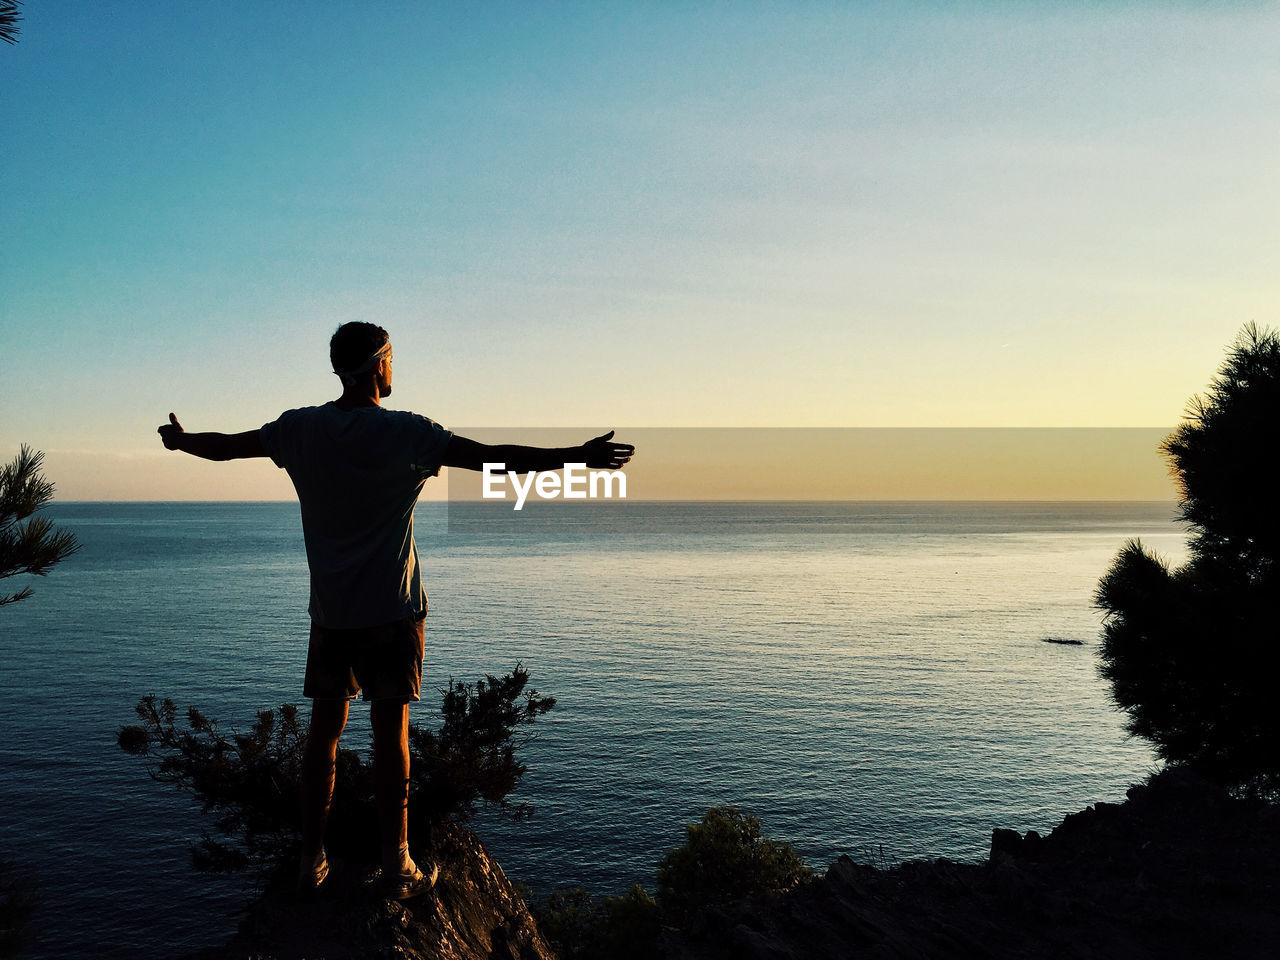 water, sky, sea, scenics - nature, standing, beauty in nature, one person, real people, leisure activity, lifestyles, sunset, human arm, tranquility, arms outstretched, limb, nature, tranquil scene, non-urban scene, horizon over water, outdoors, arms raised